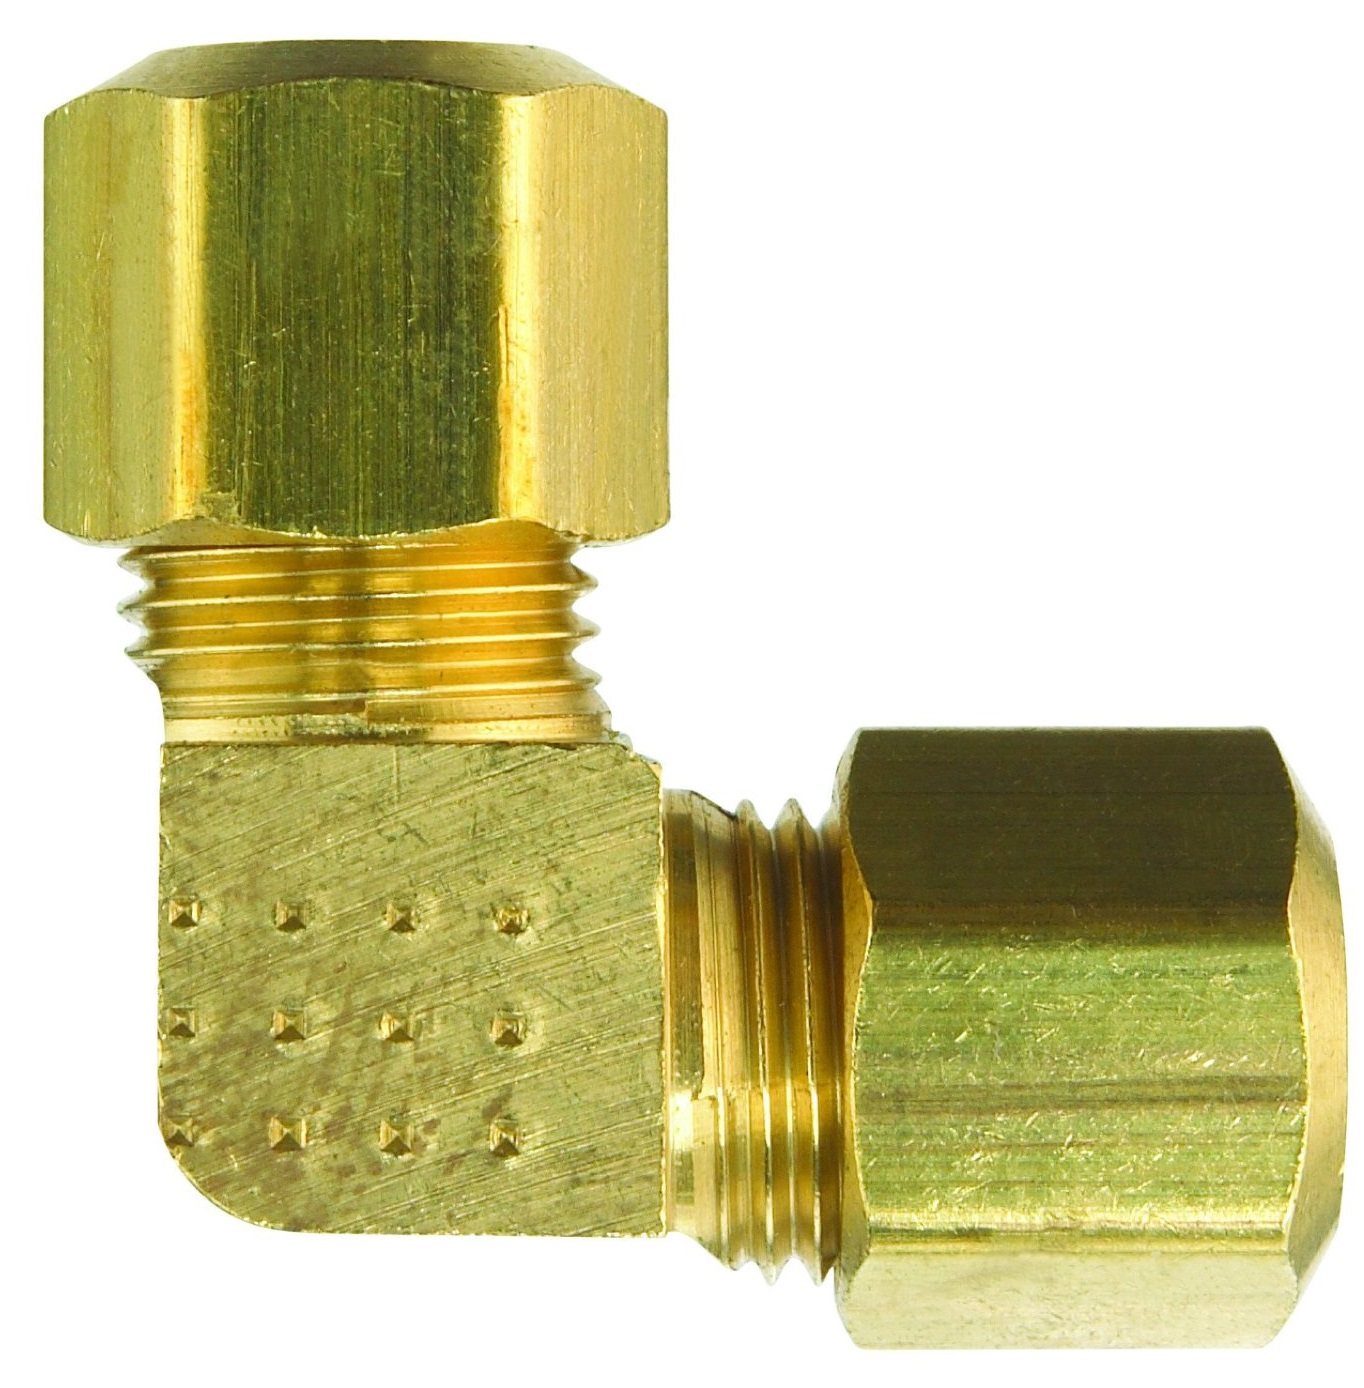 JMF 4338182 90-Degree Compression Elbow, Brass, 400 psi